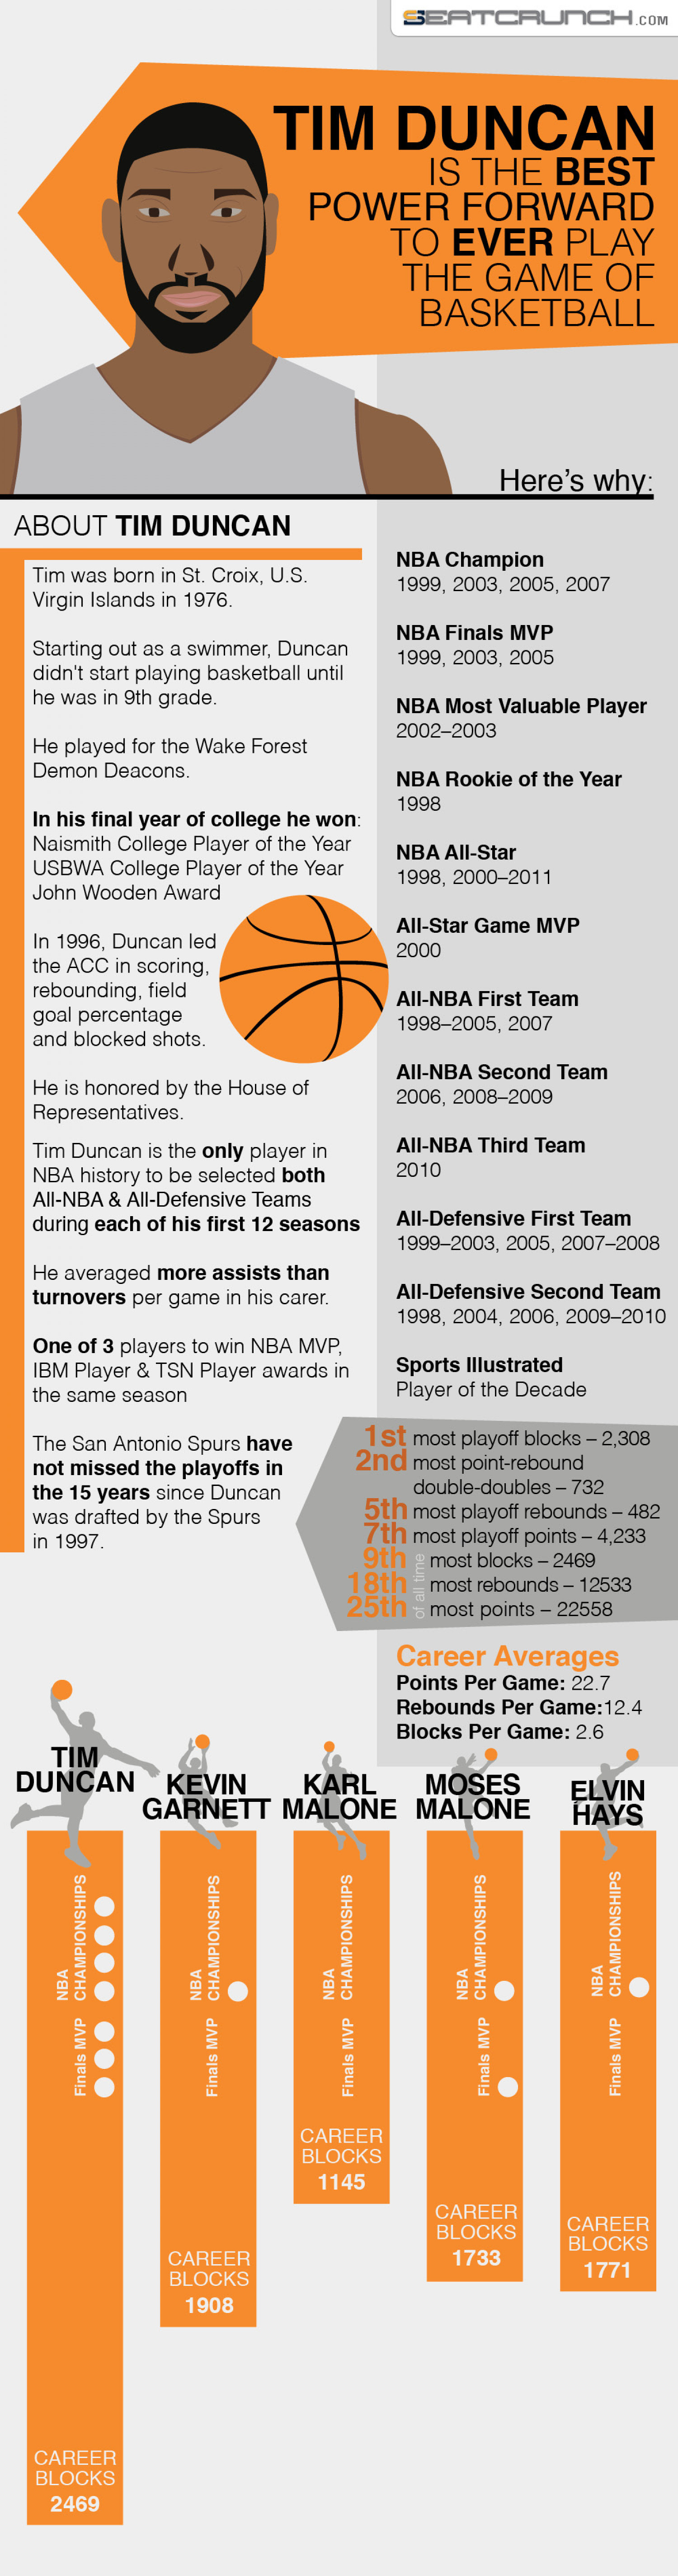 The Best Power Forward Of All Time Infographic